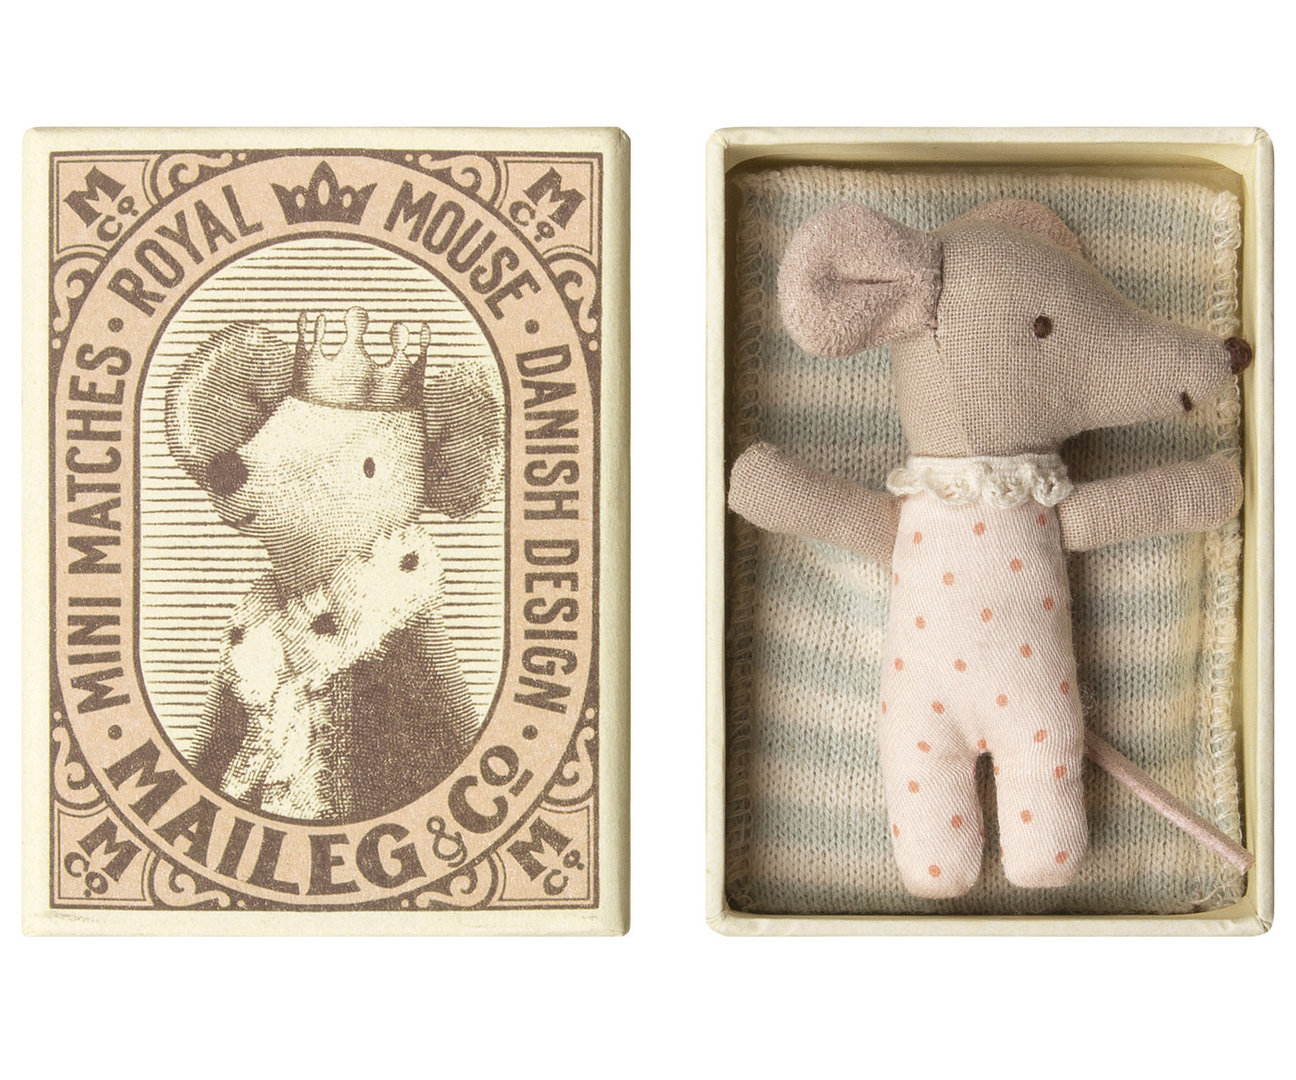 MAILEG Baby Maus/ mouse, Sleepy/wakey in box - Girl-blau